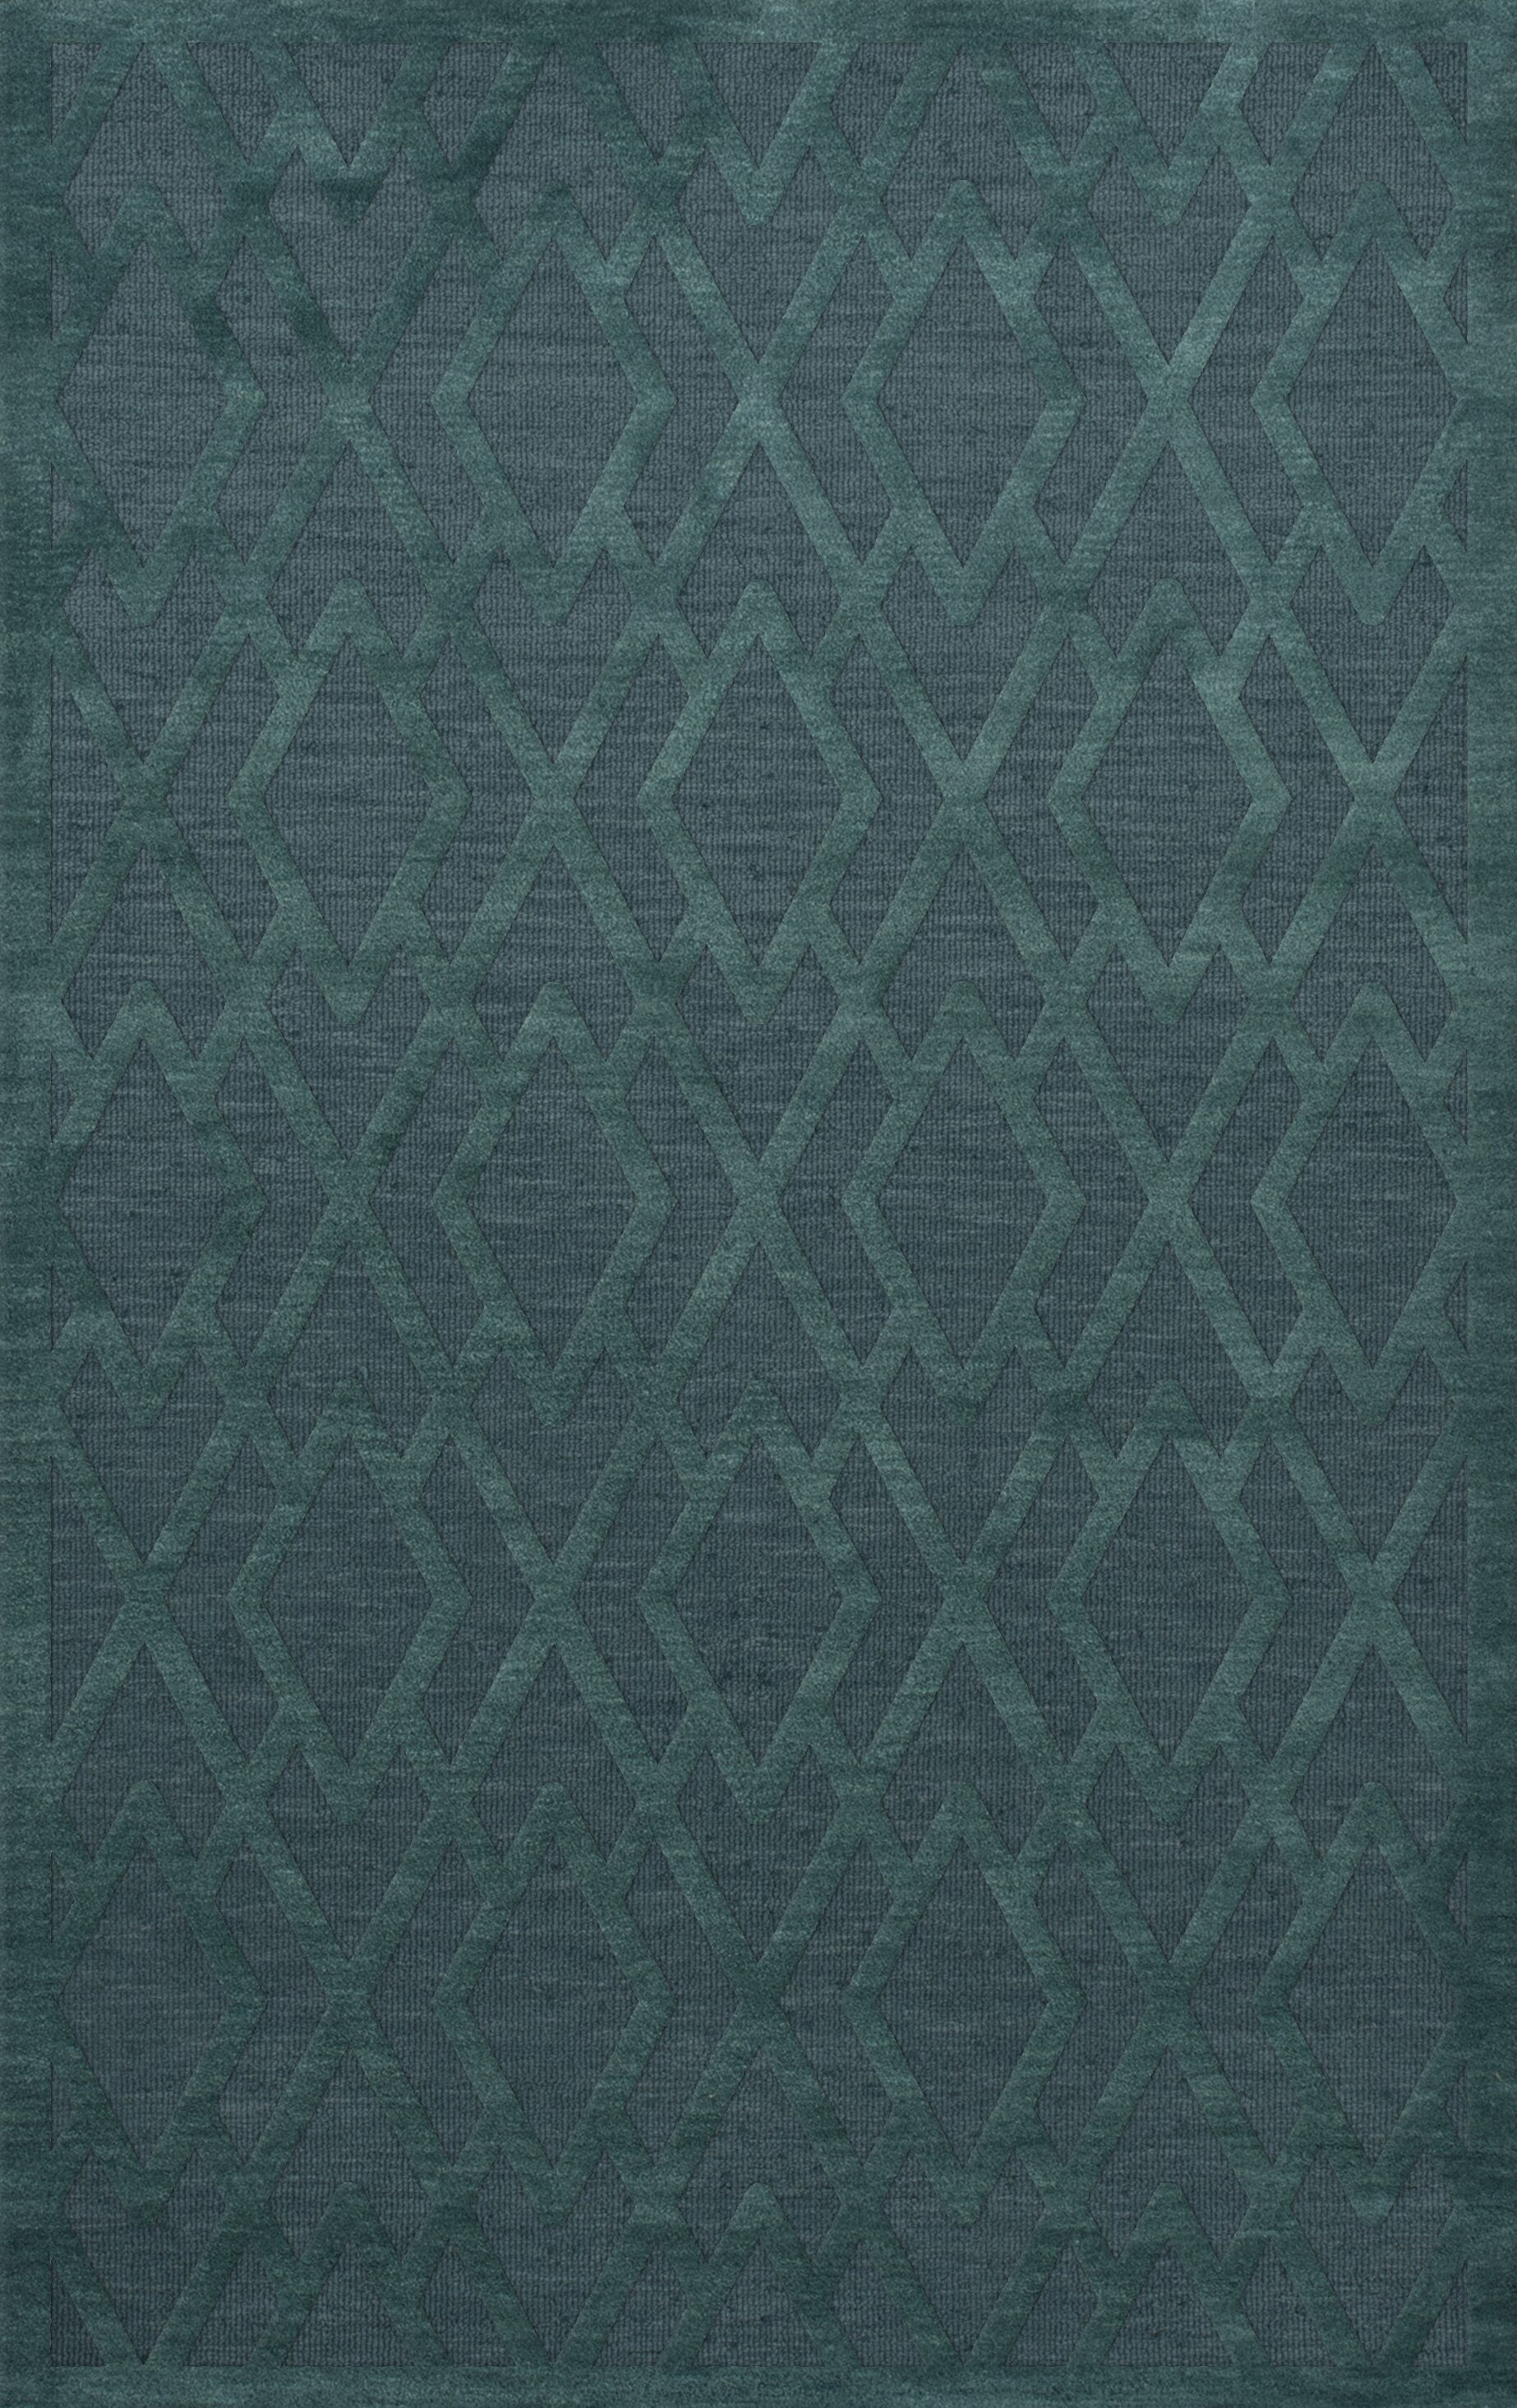 Dover Teal Area Rug Rug Size: Rectangle 6' x 9'